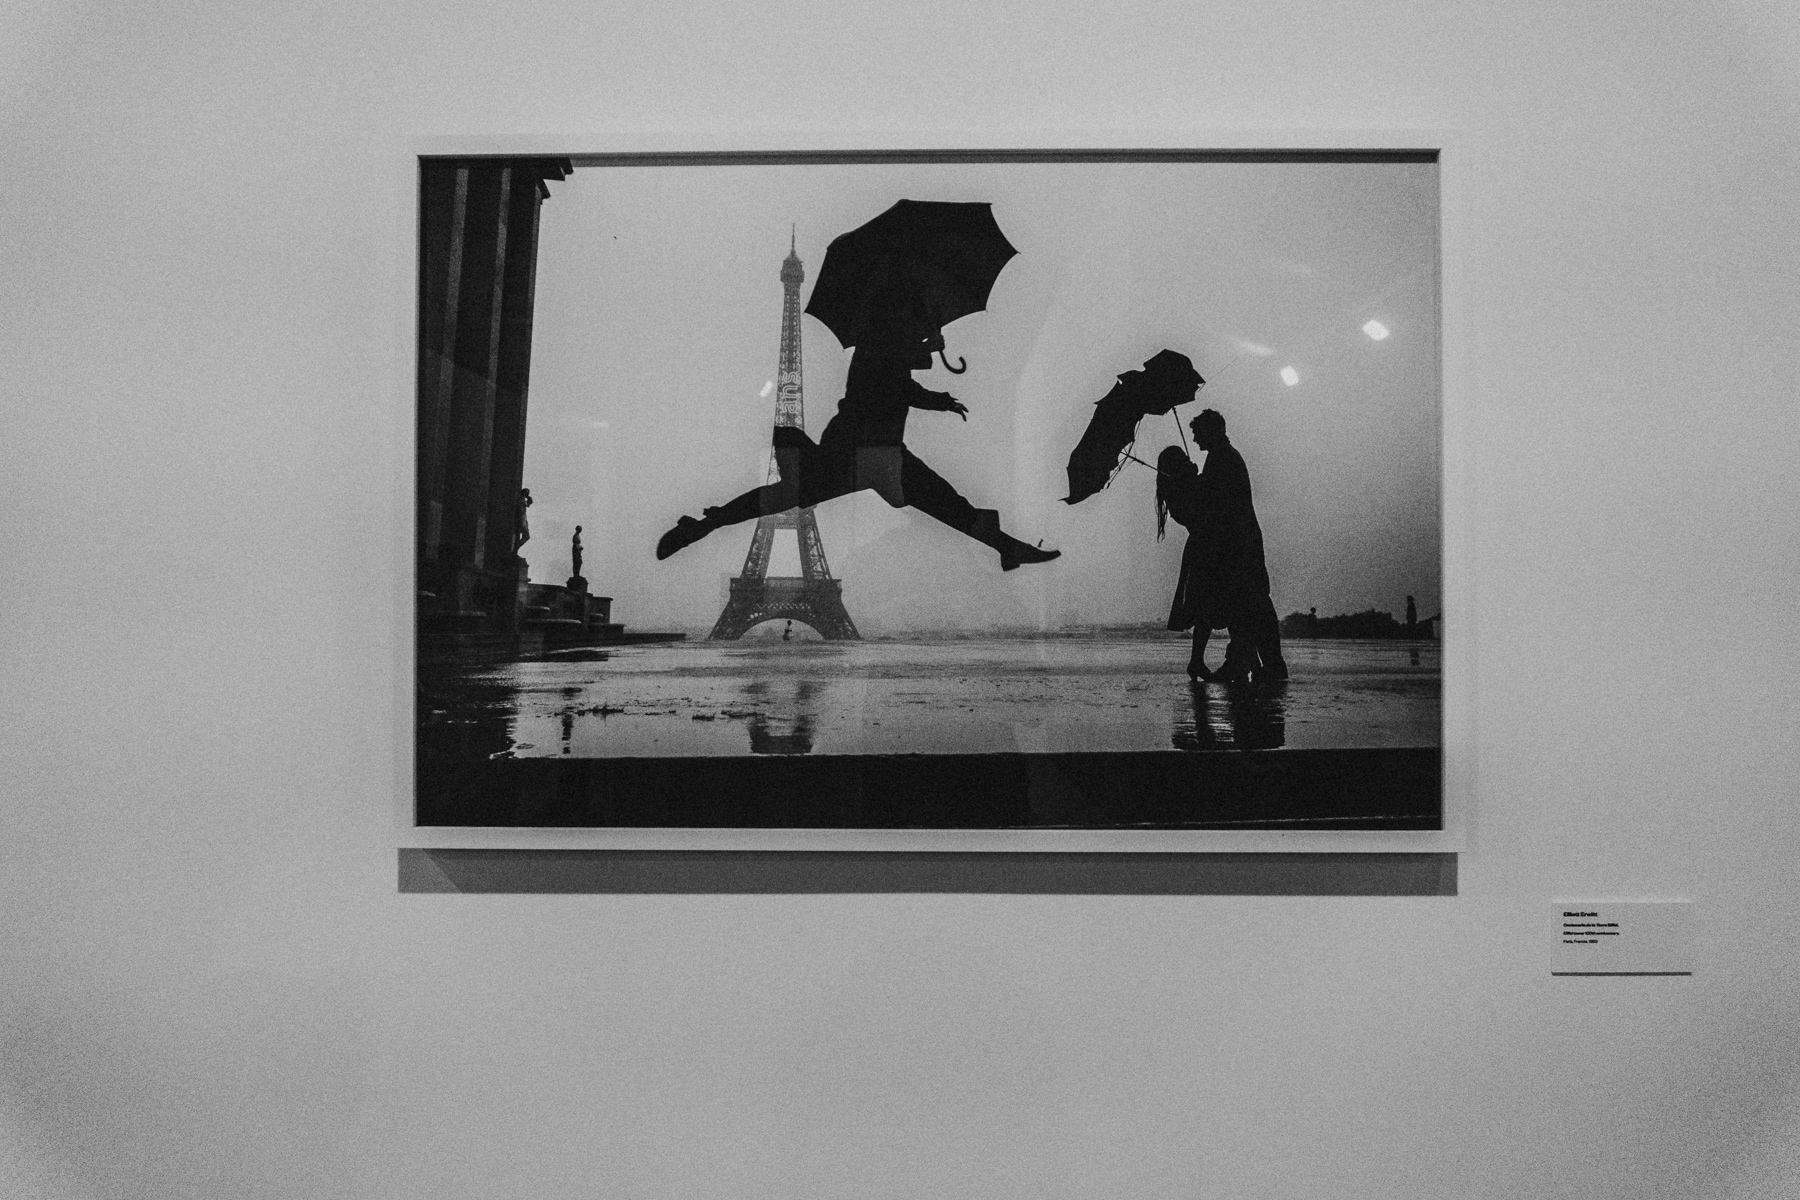 """And with my friend Andrés we visited some expositions in Madrid, this photo was taken at the """"Players"""" Exposition organized by the Magnum Photography Agency."""